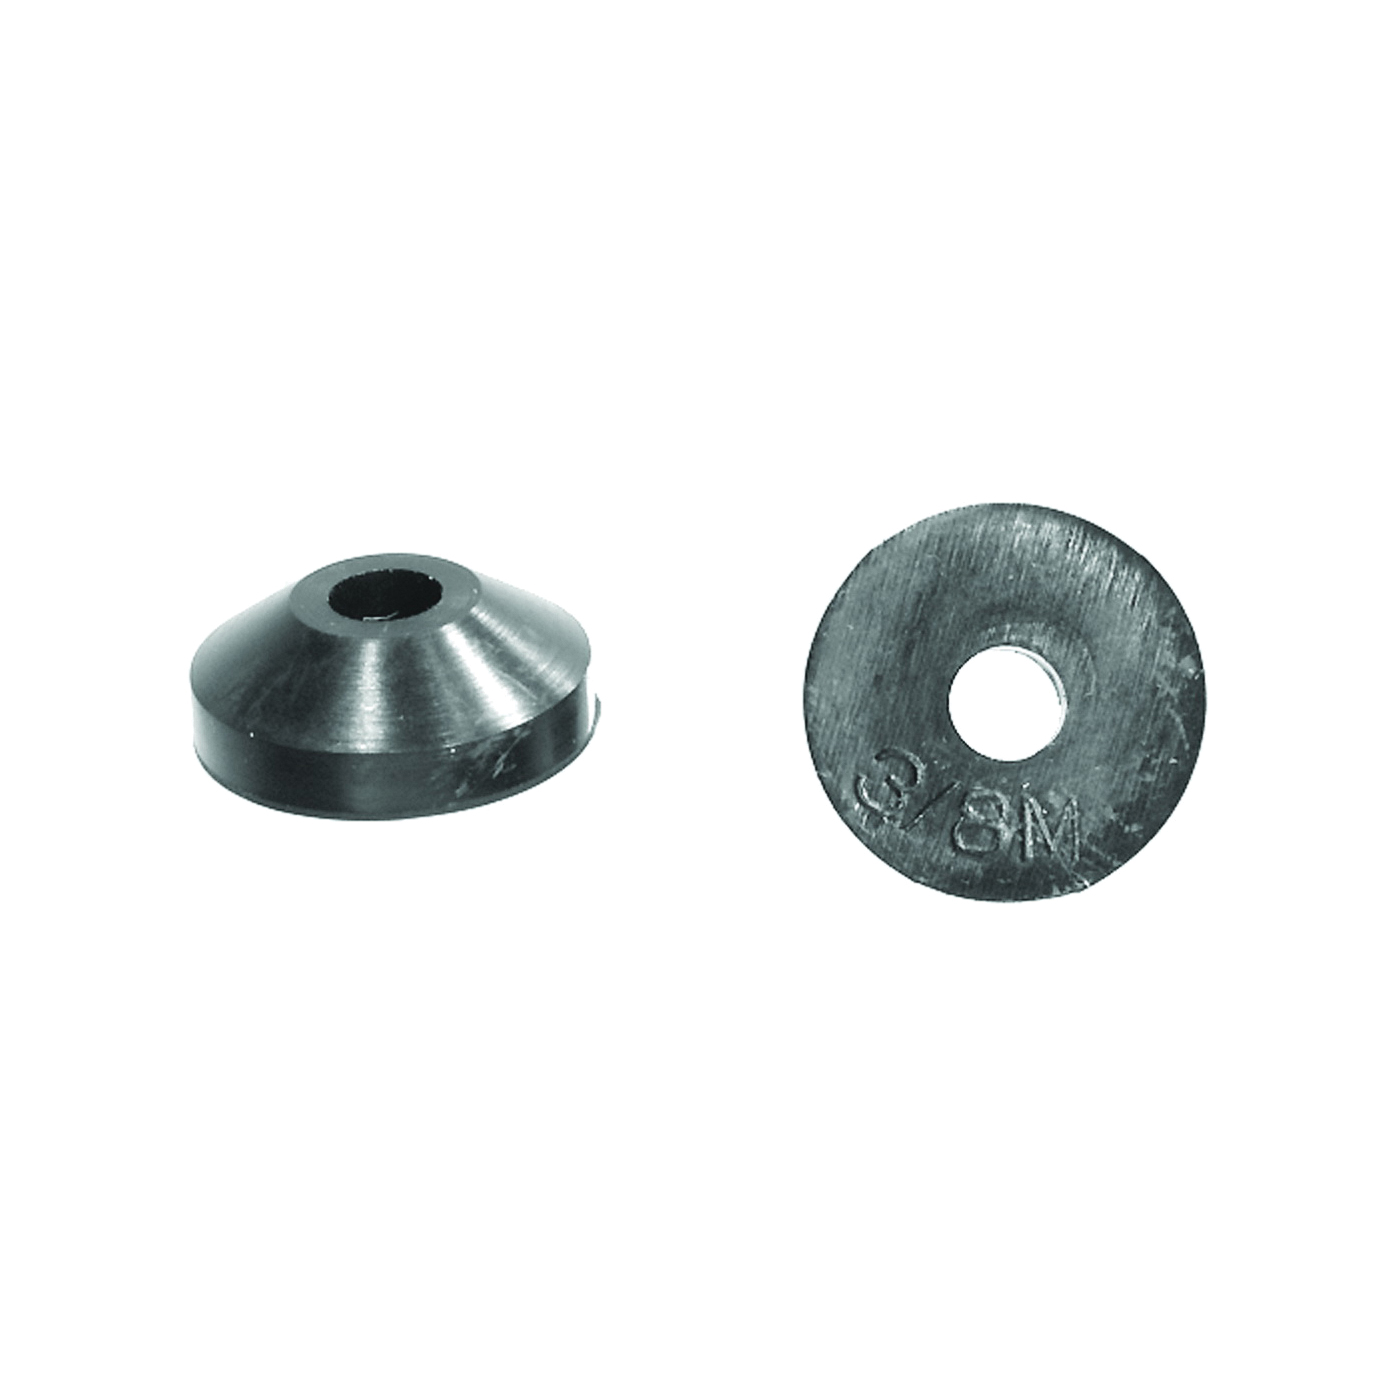 Picture of Danco 35095B Faucet Washer, #3/8M, 21/32 in Dia, Rubber